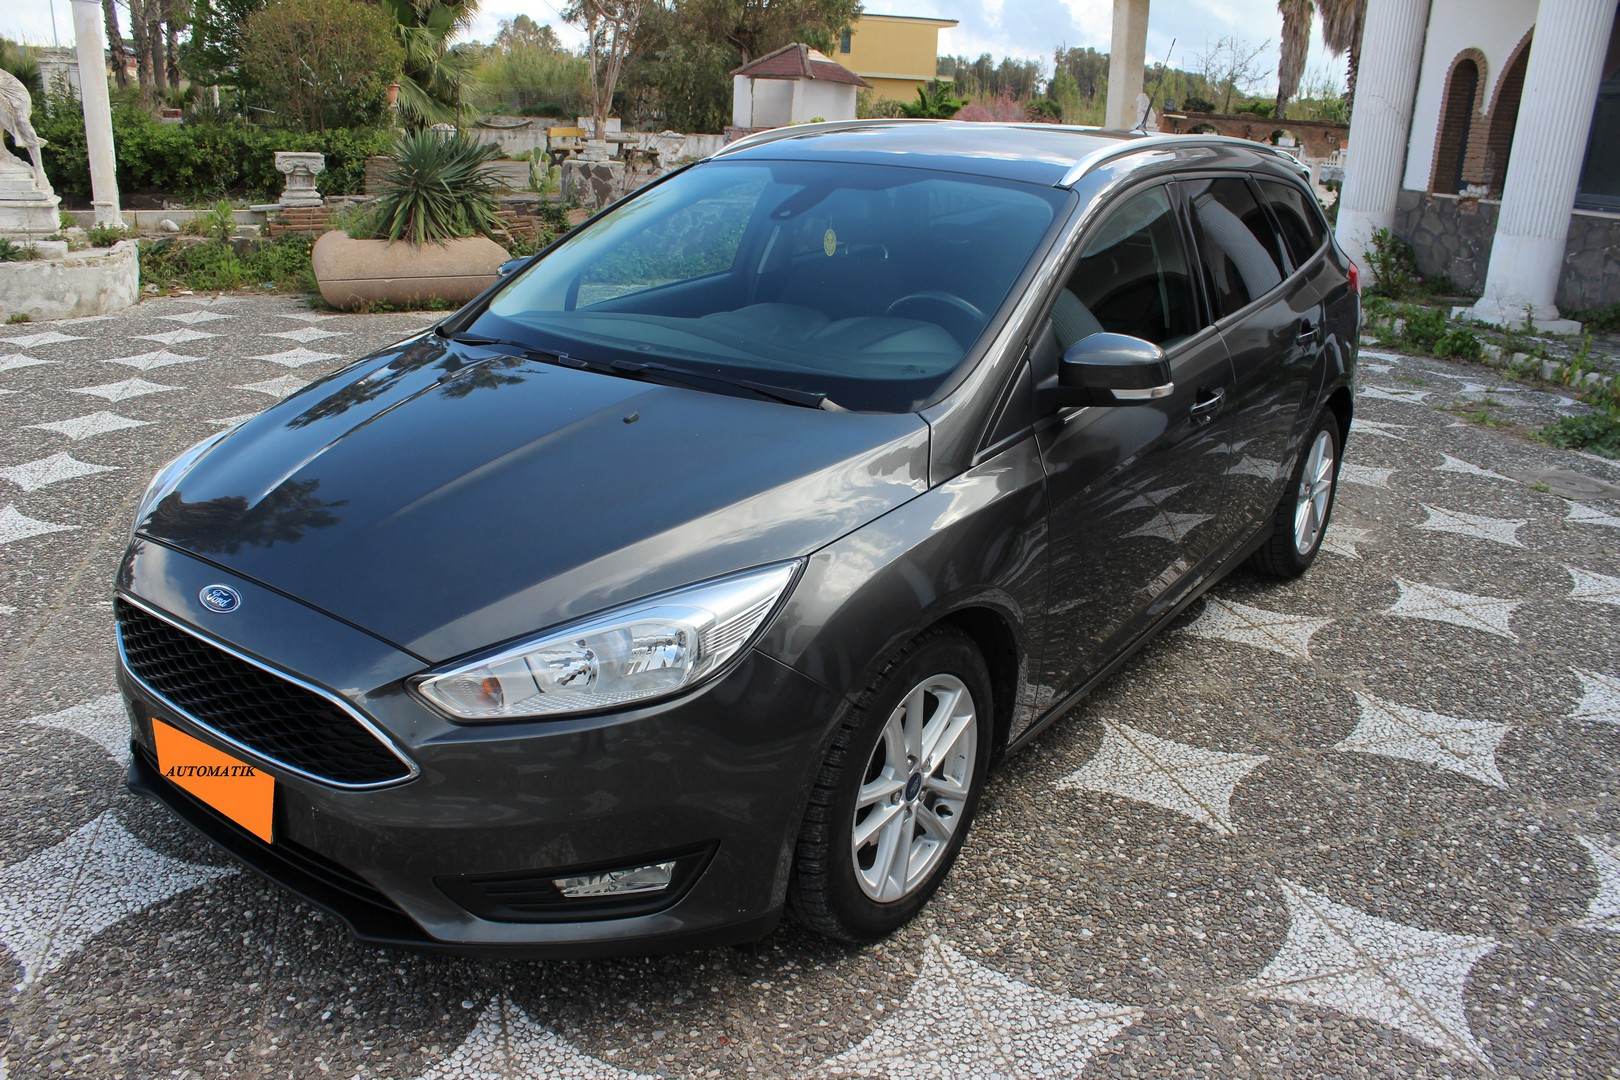 ford focus my 2017 stw 1 5 tdci 120 cv automatik. Black Bedroom Furniture Sets. Home Design Ideas